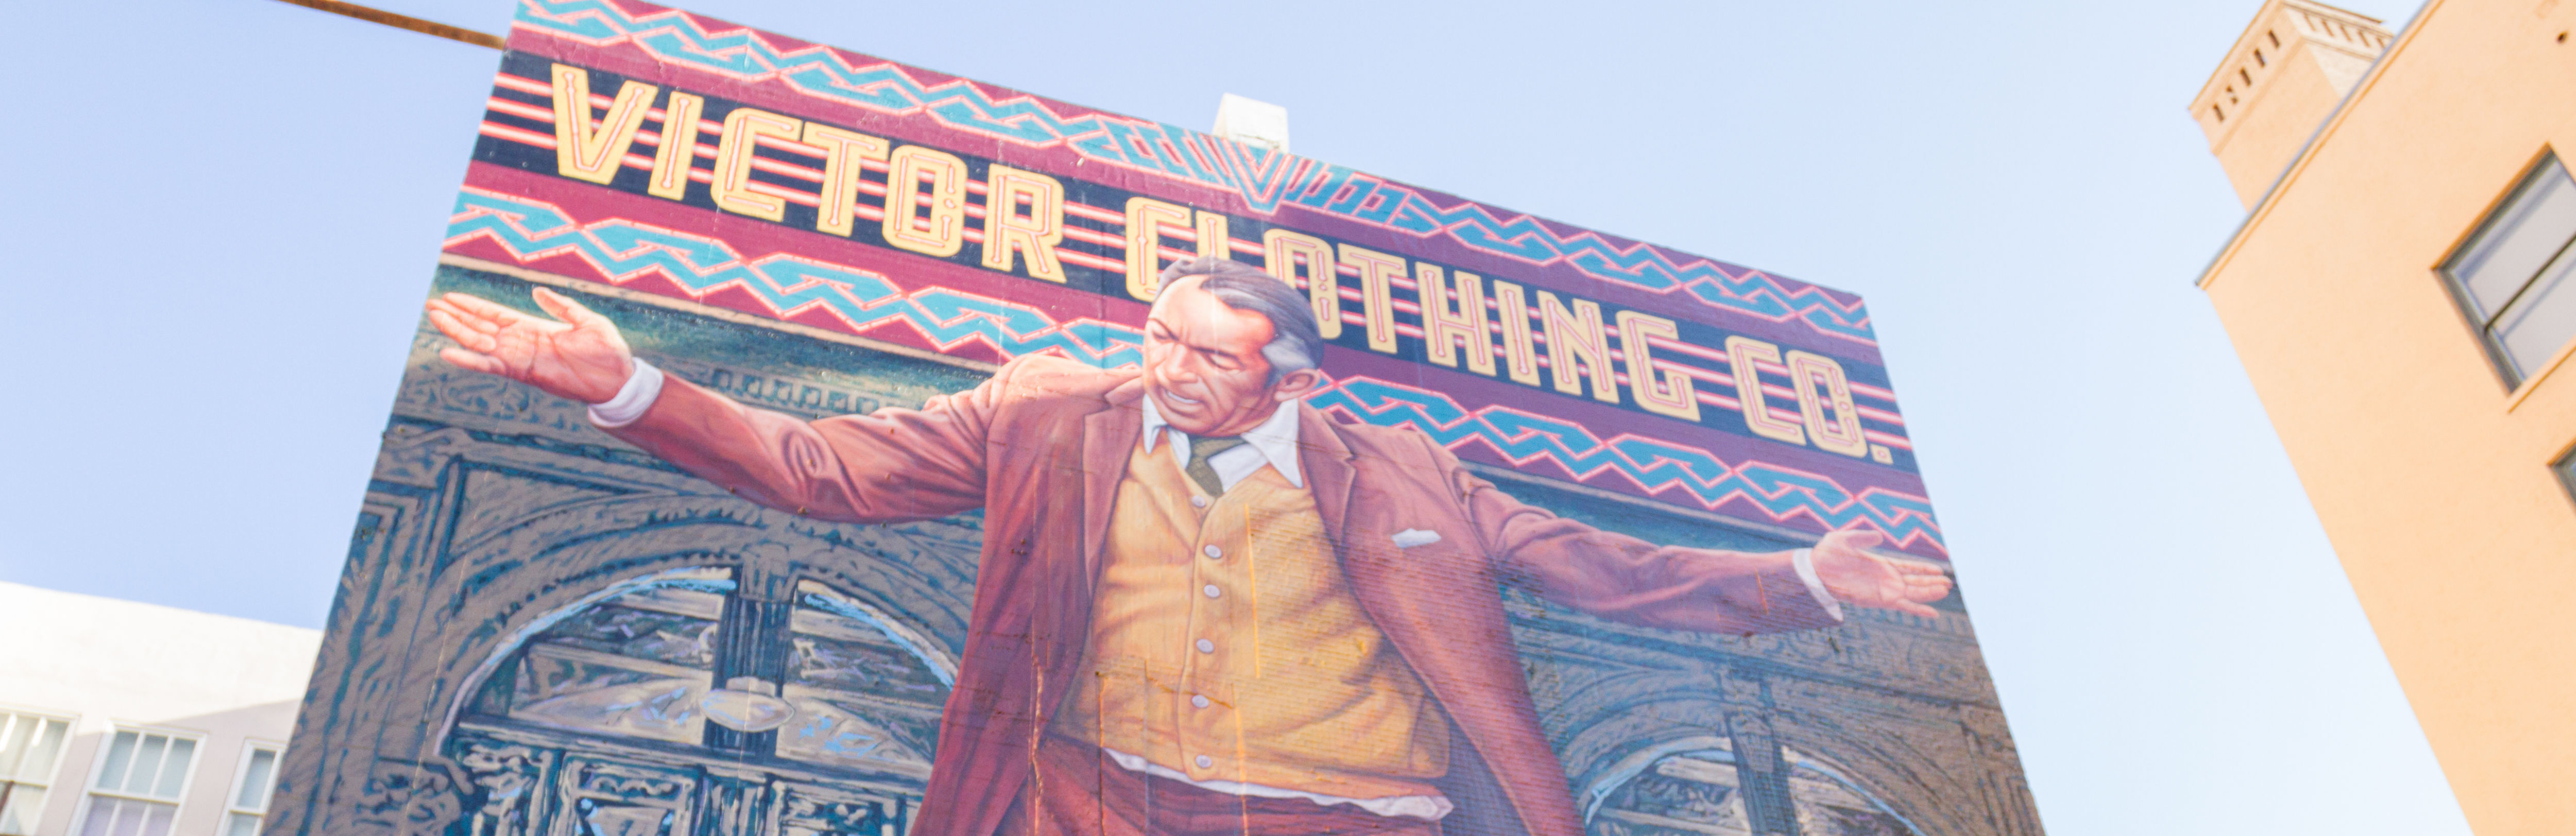 Restored mural of anthony quinn unveiled in los angeles for Anthony quinn mural